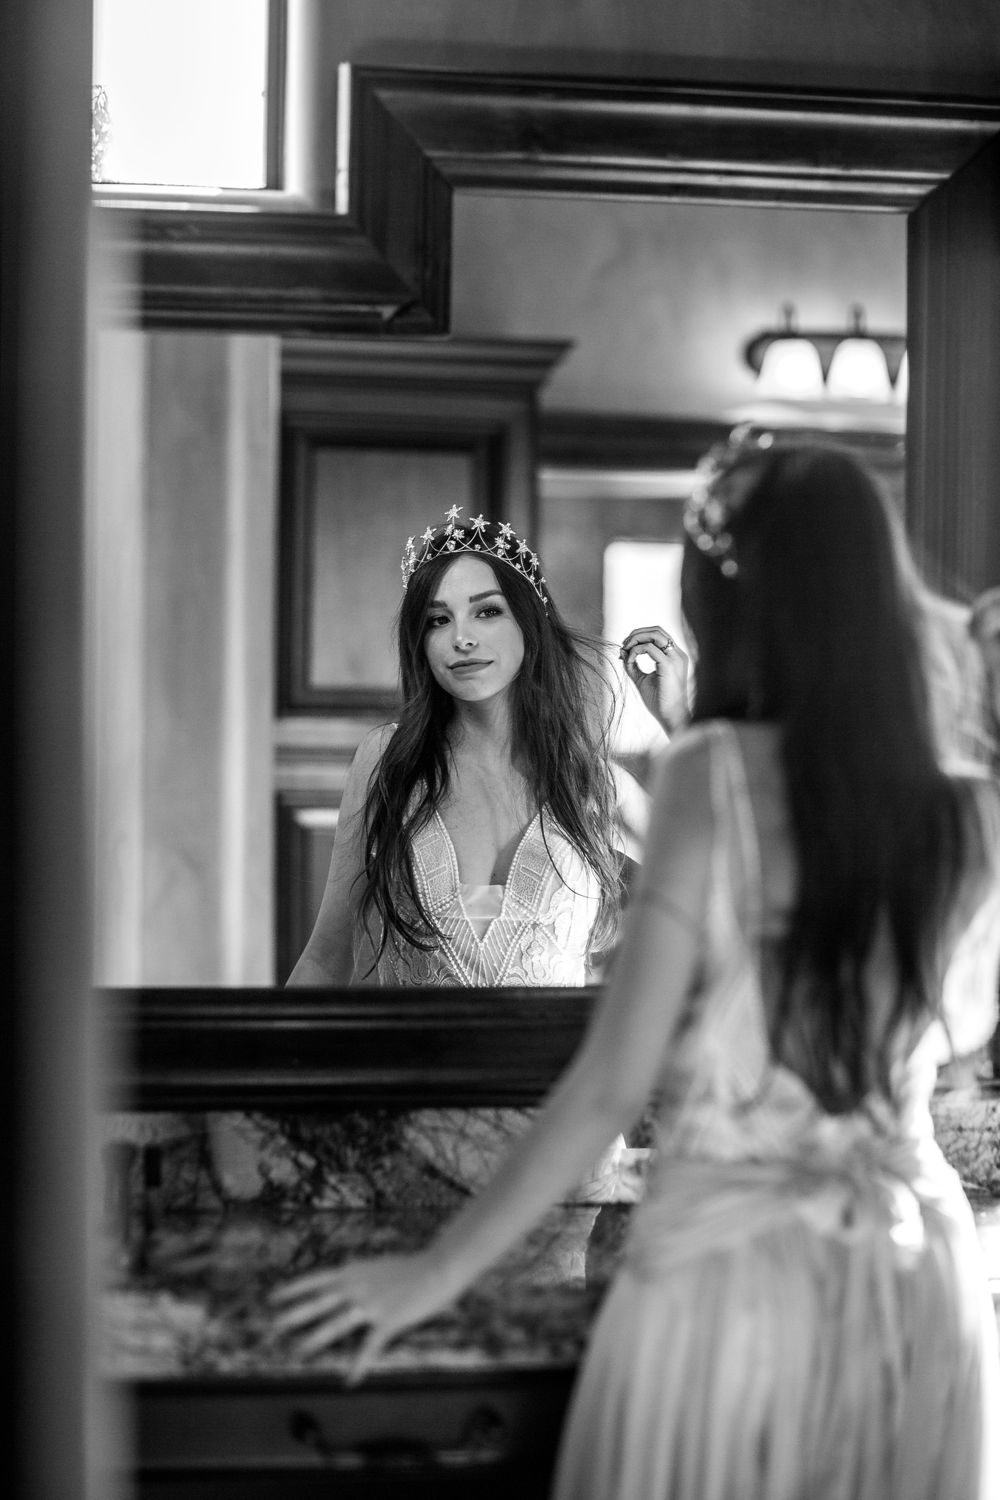 rebecca skidgel photography mesa arizona wedding bride getting ready in mirror